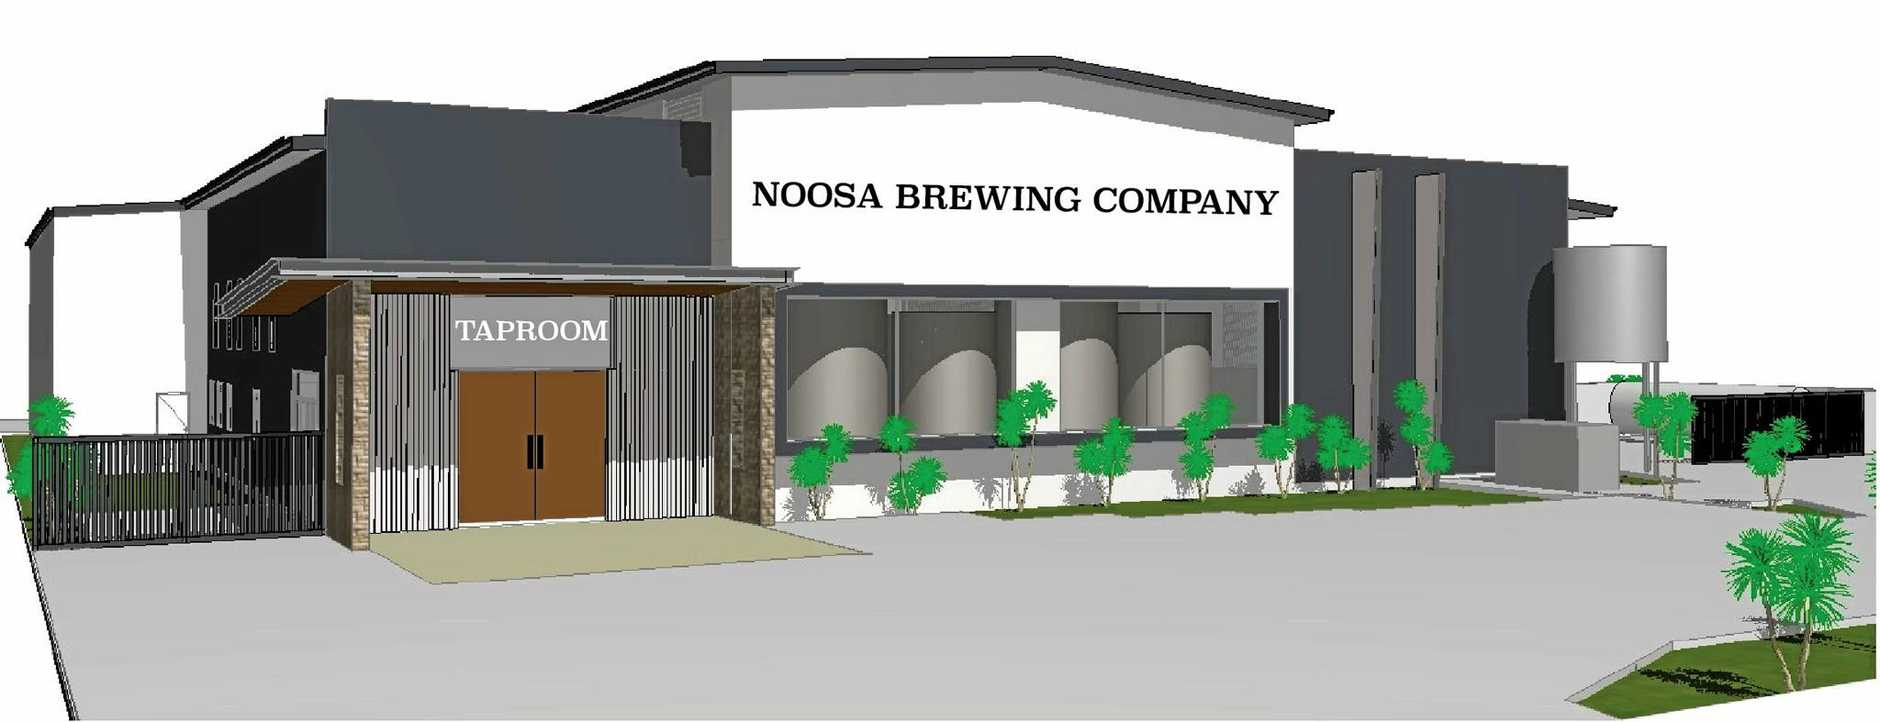 SITE: An artist's impression of the new Noosa Brewing Company brewery.